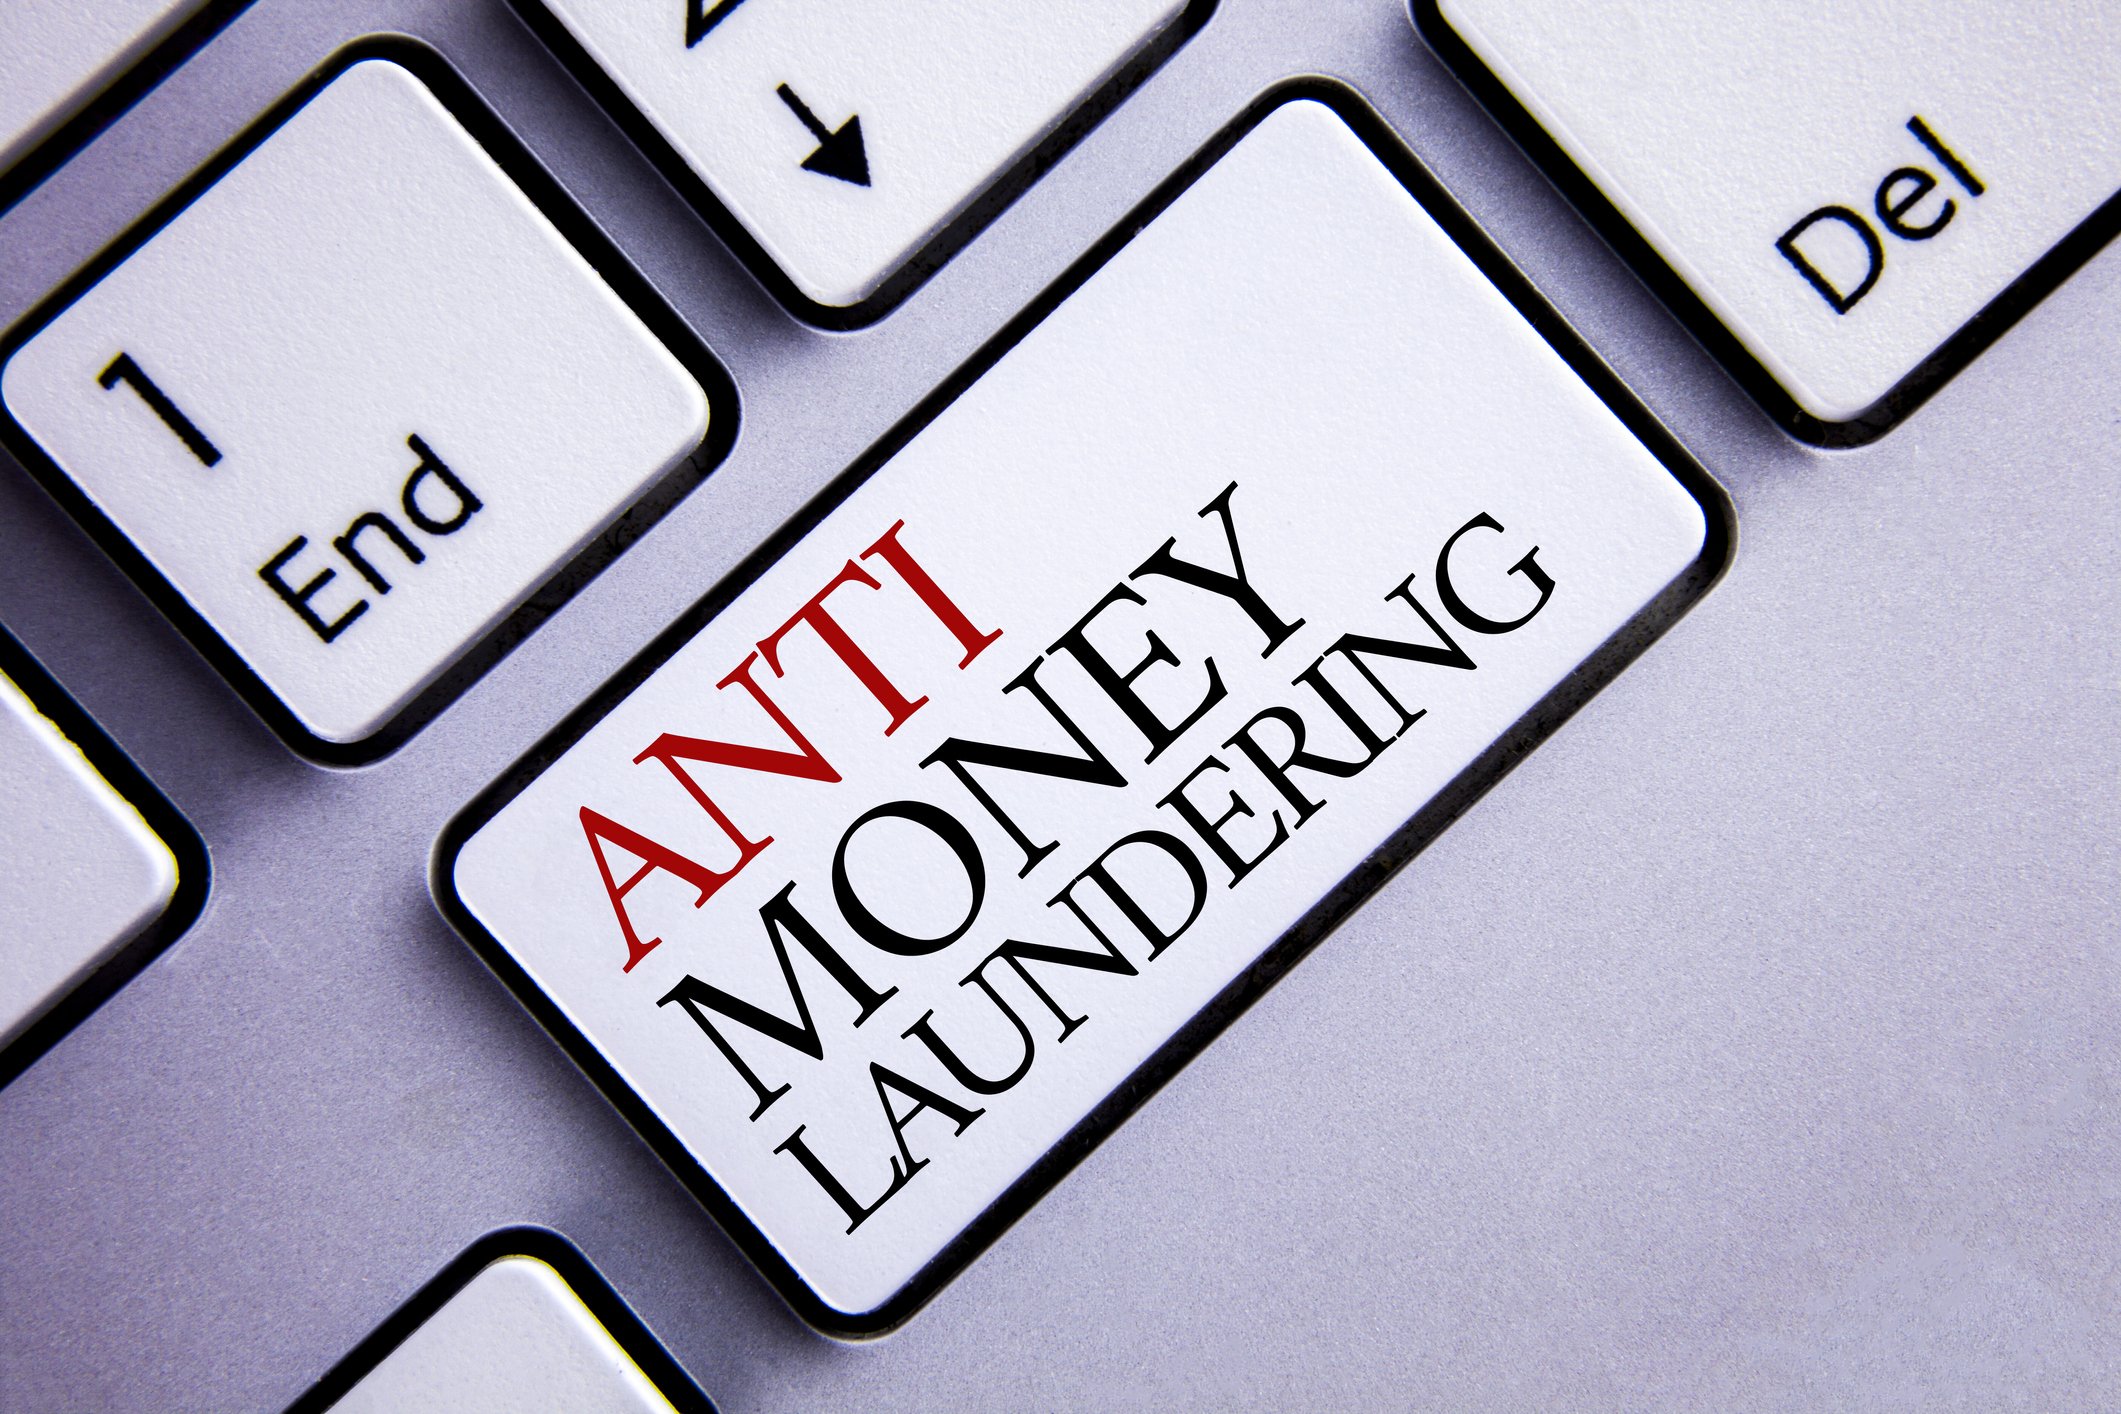 What is money laundering and terrorist financing?